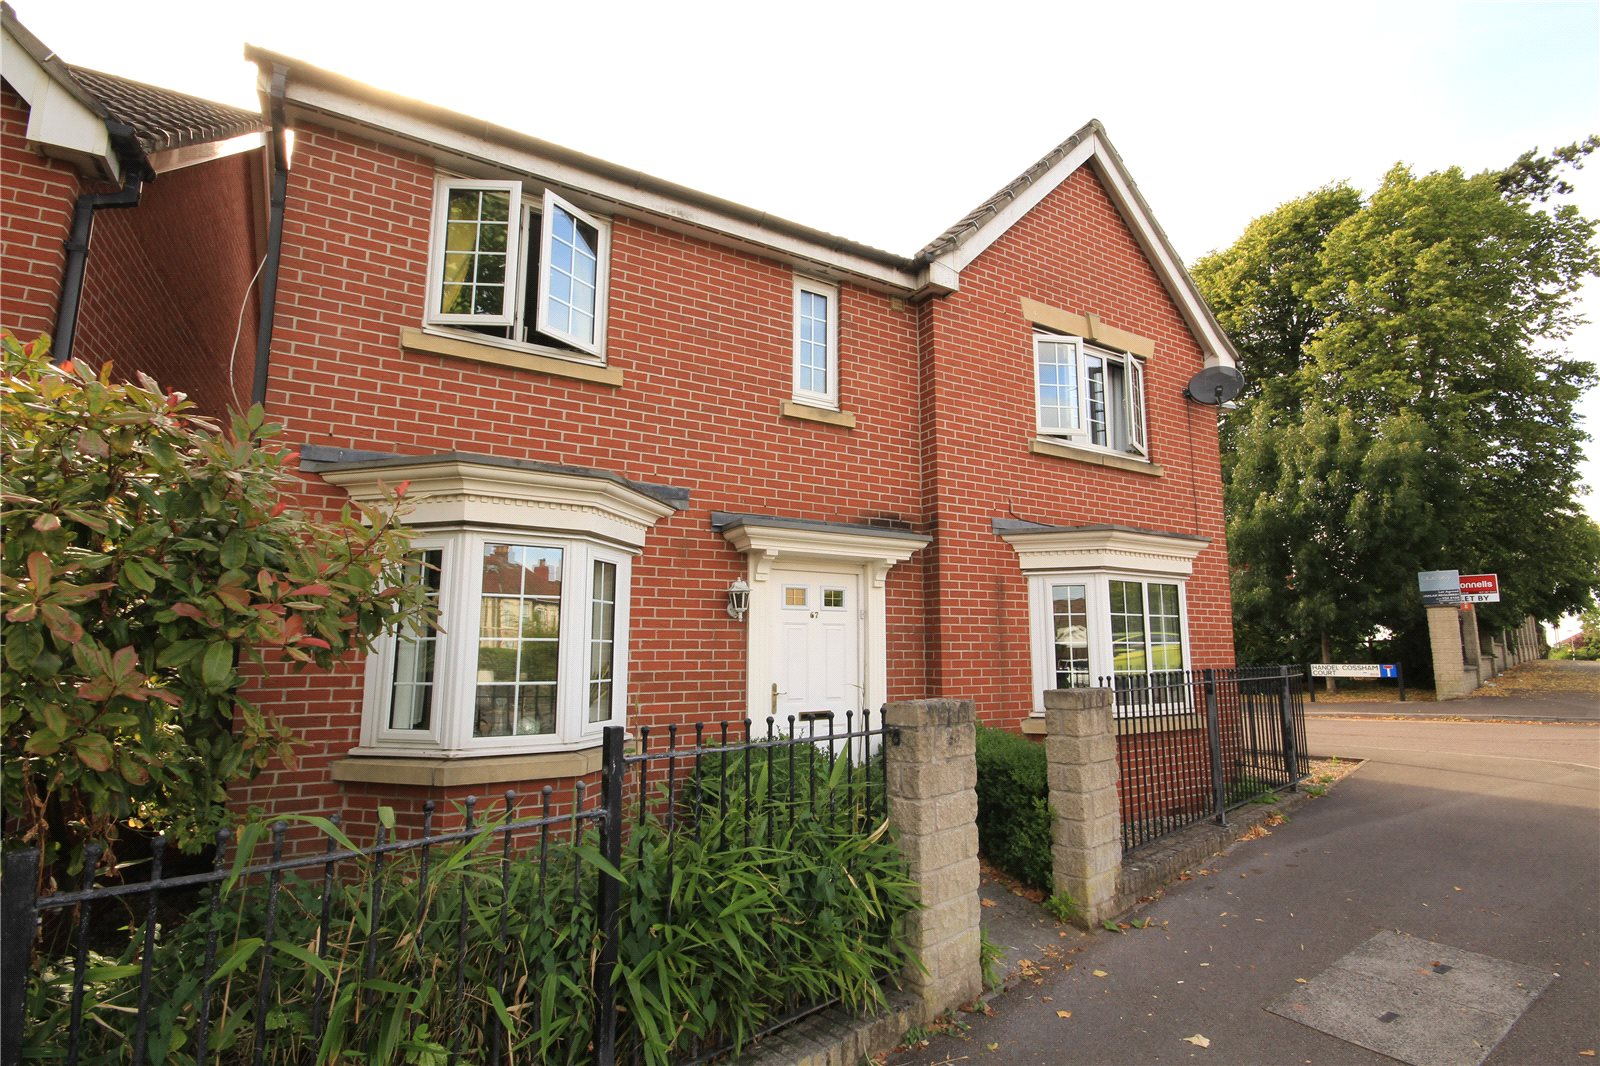 4 Bedrooms Detached House for sale in Lodge Road Kingswood Bristol BS15